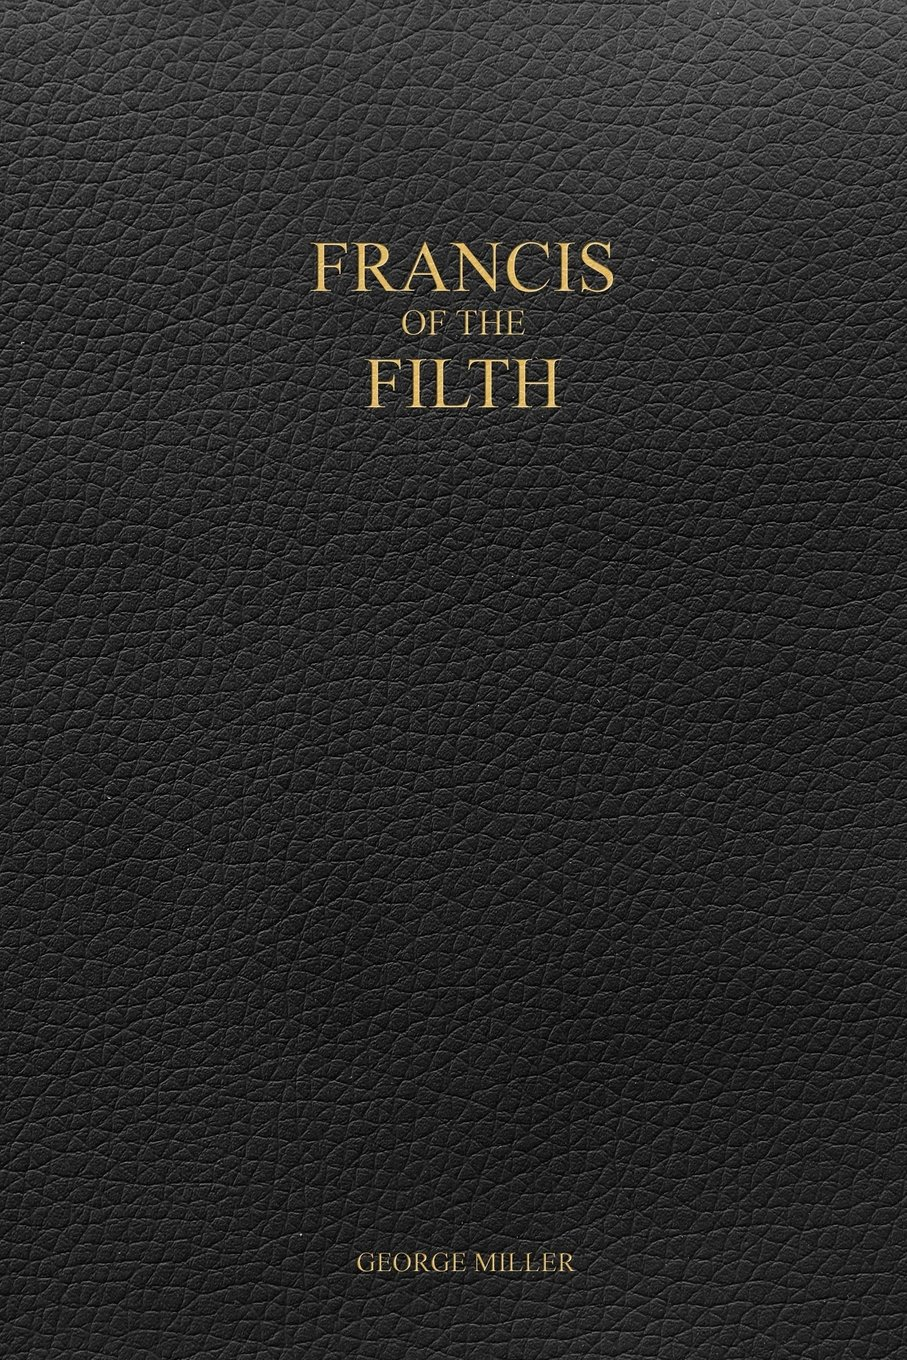 Download ebook Francis of the Filth